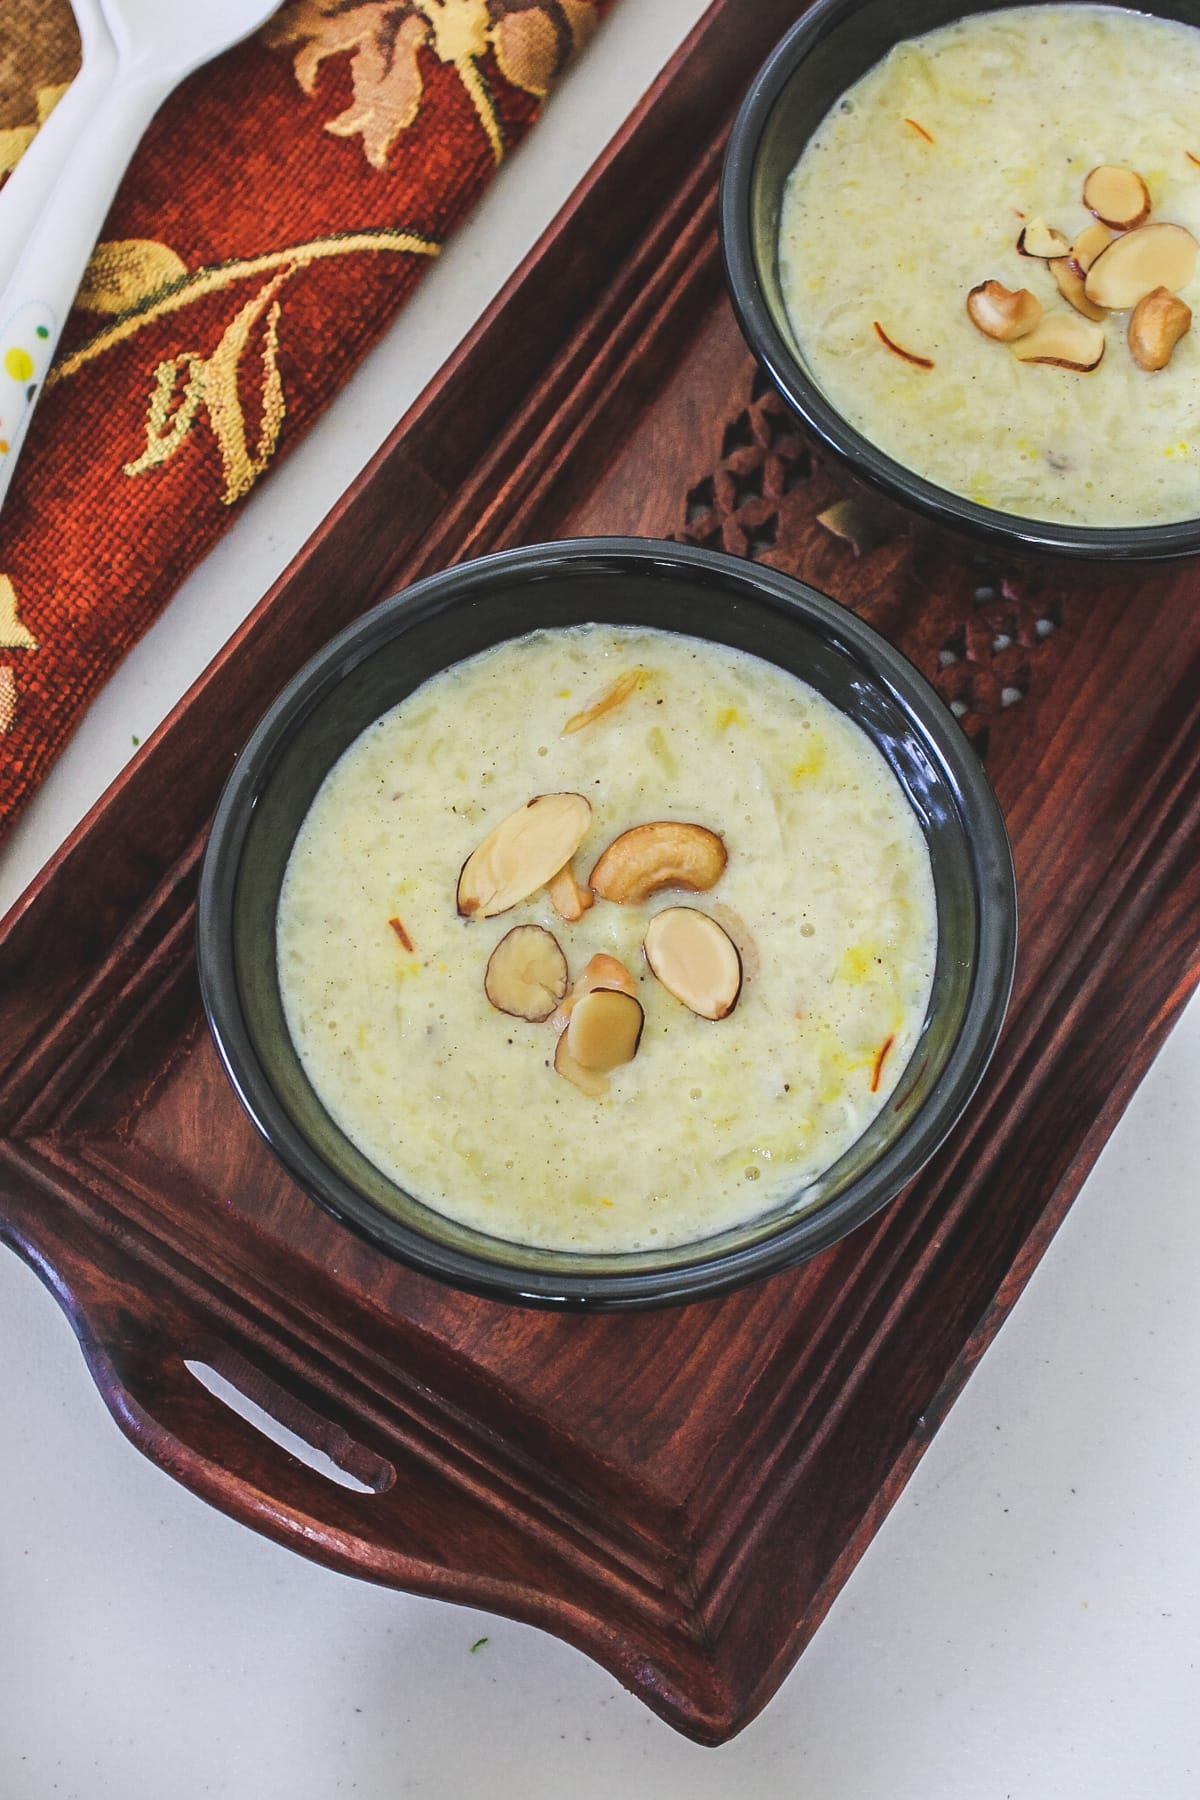 2 bowls of sweet potato kheer garnished with nuts in a wooden tray